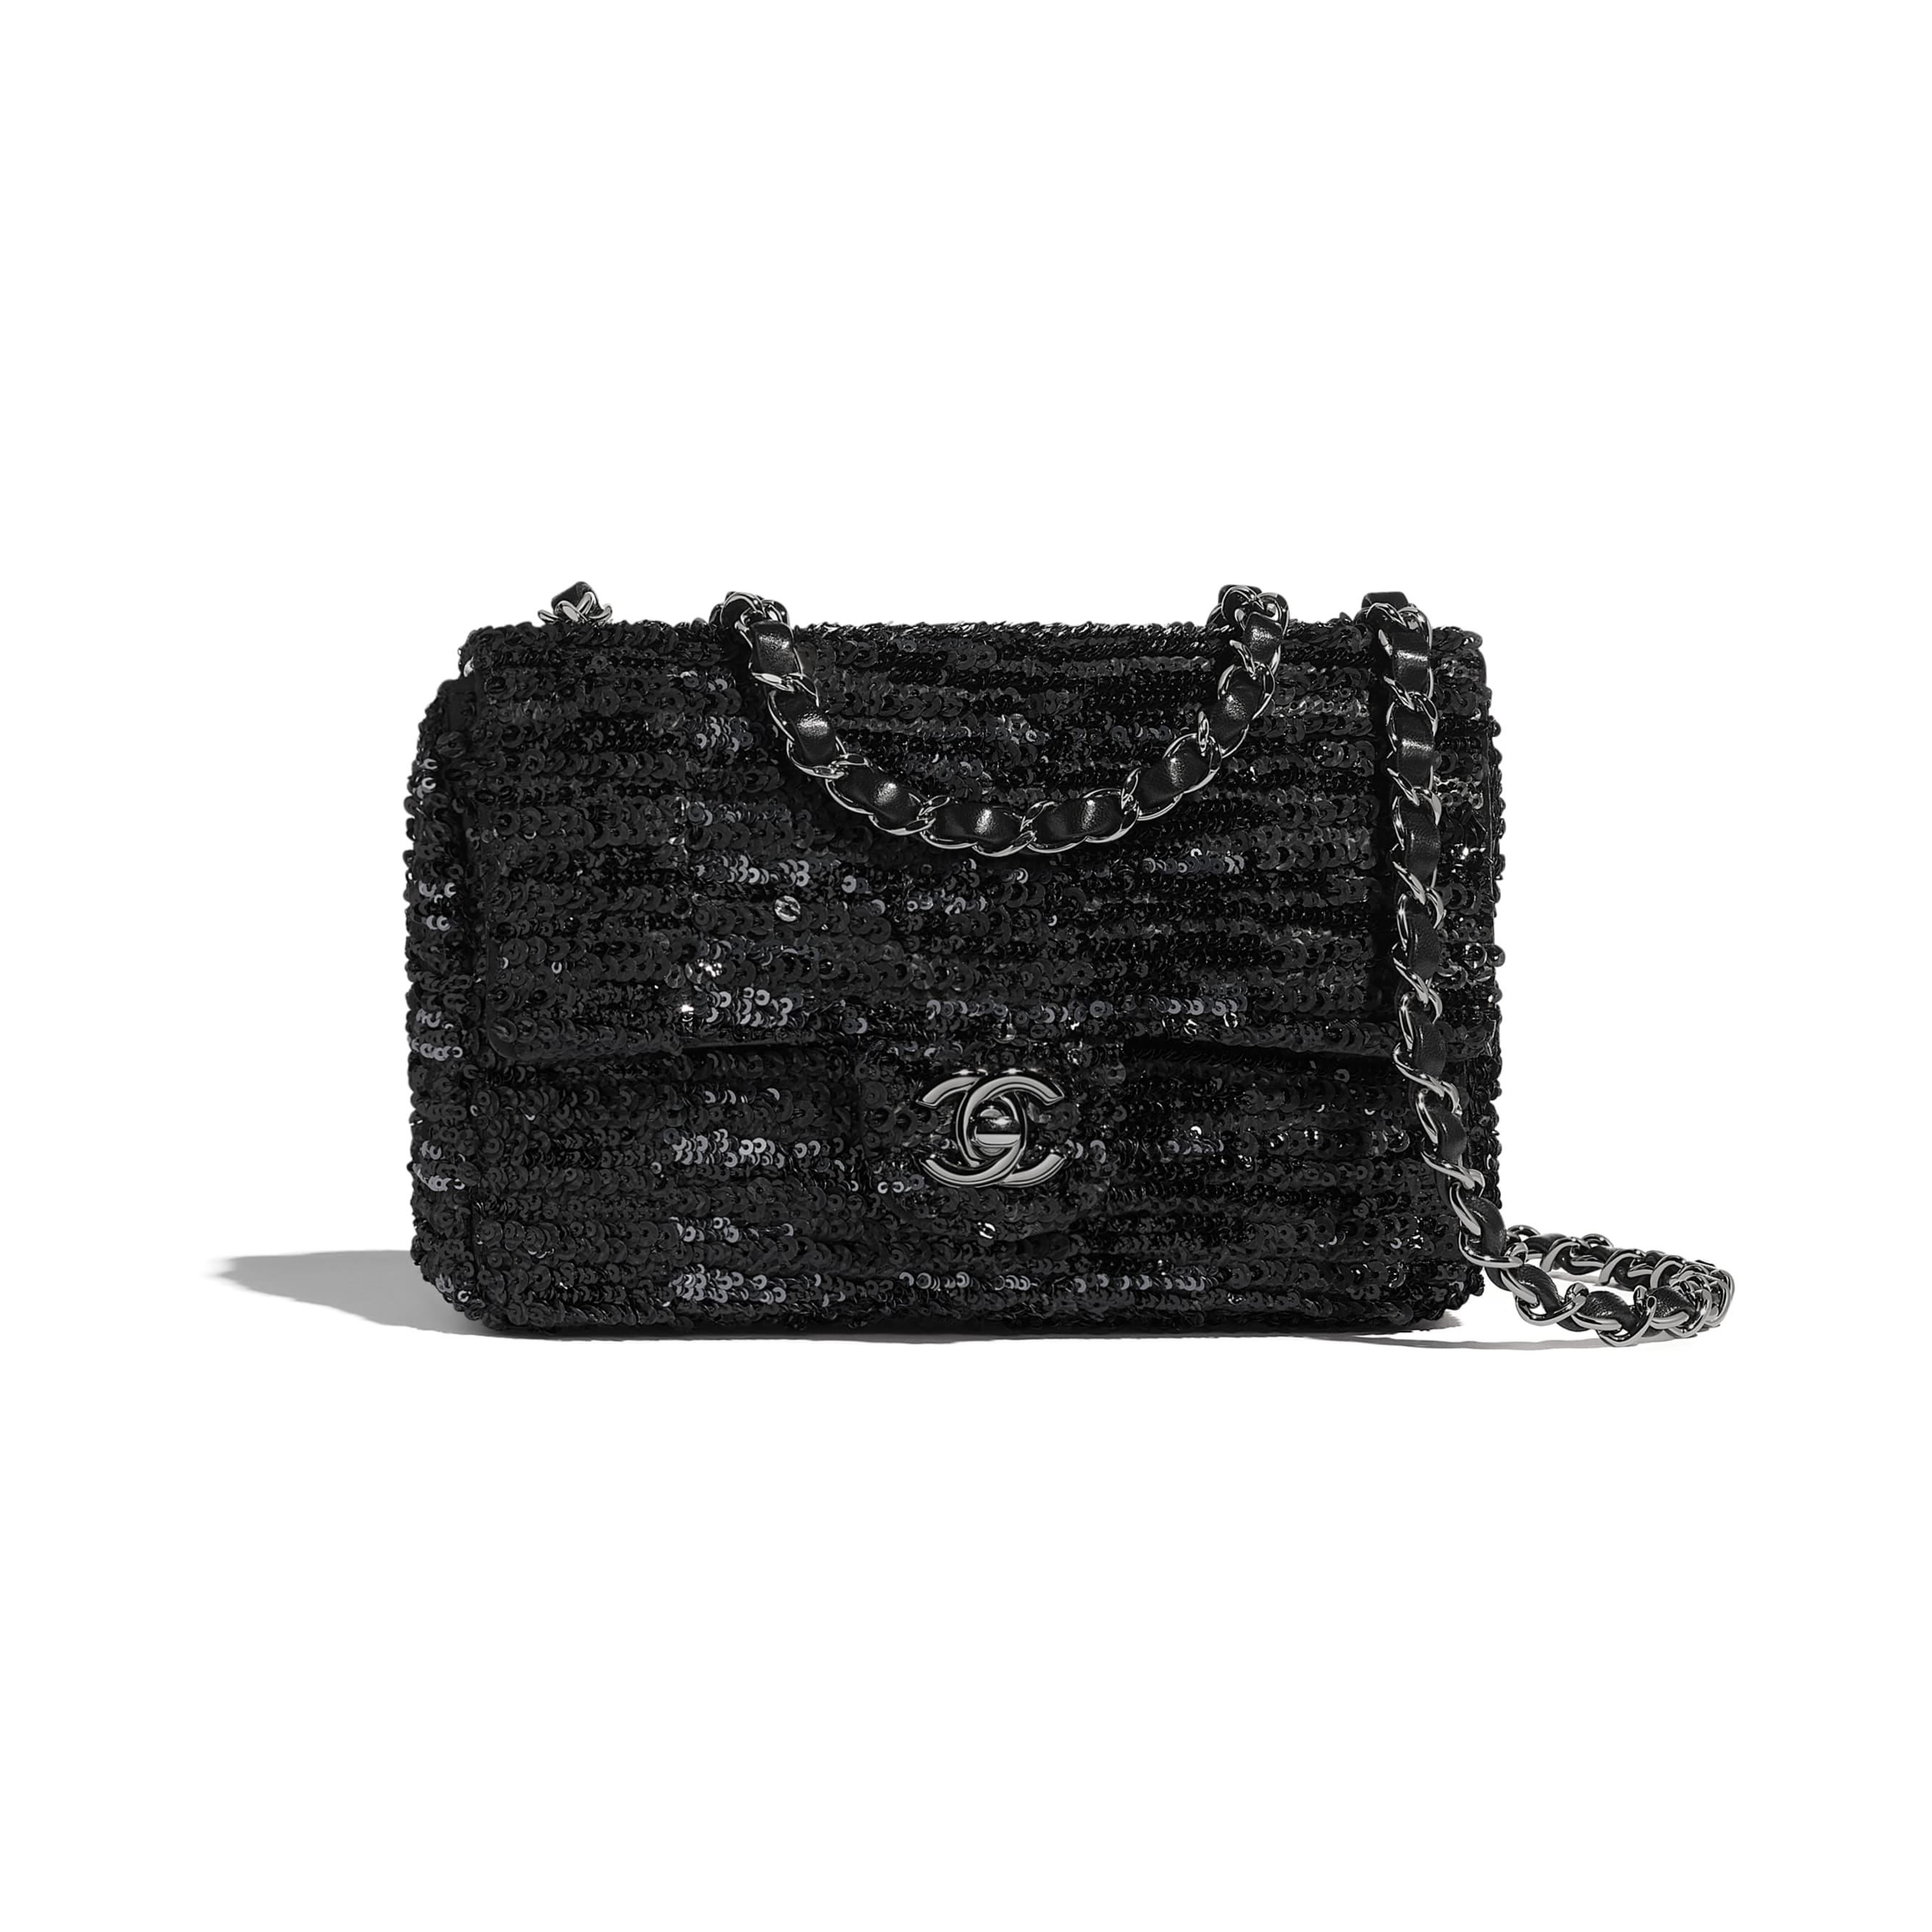 Flap Bag - Black - Sequins & Ruthenium-Finish Metal - CHANEL - Default view - see standard sized version